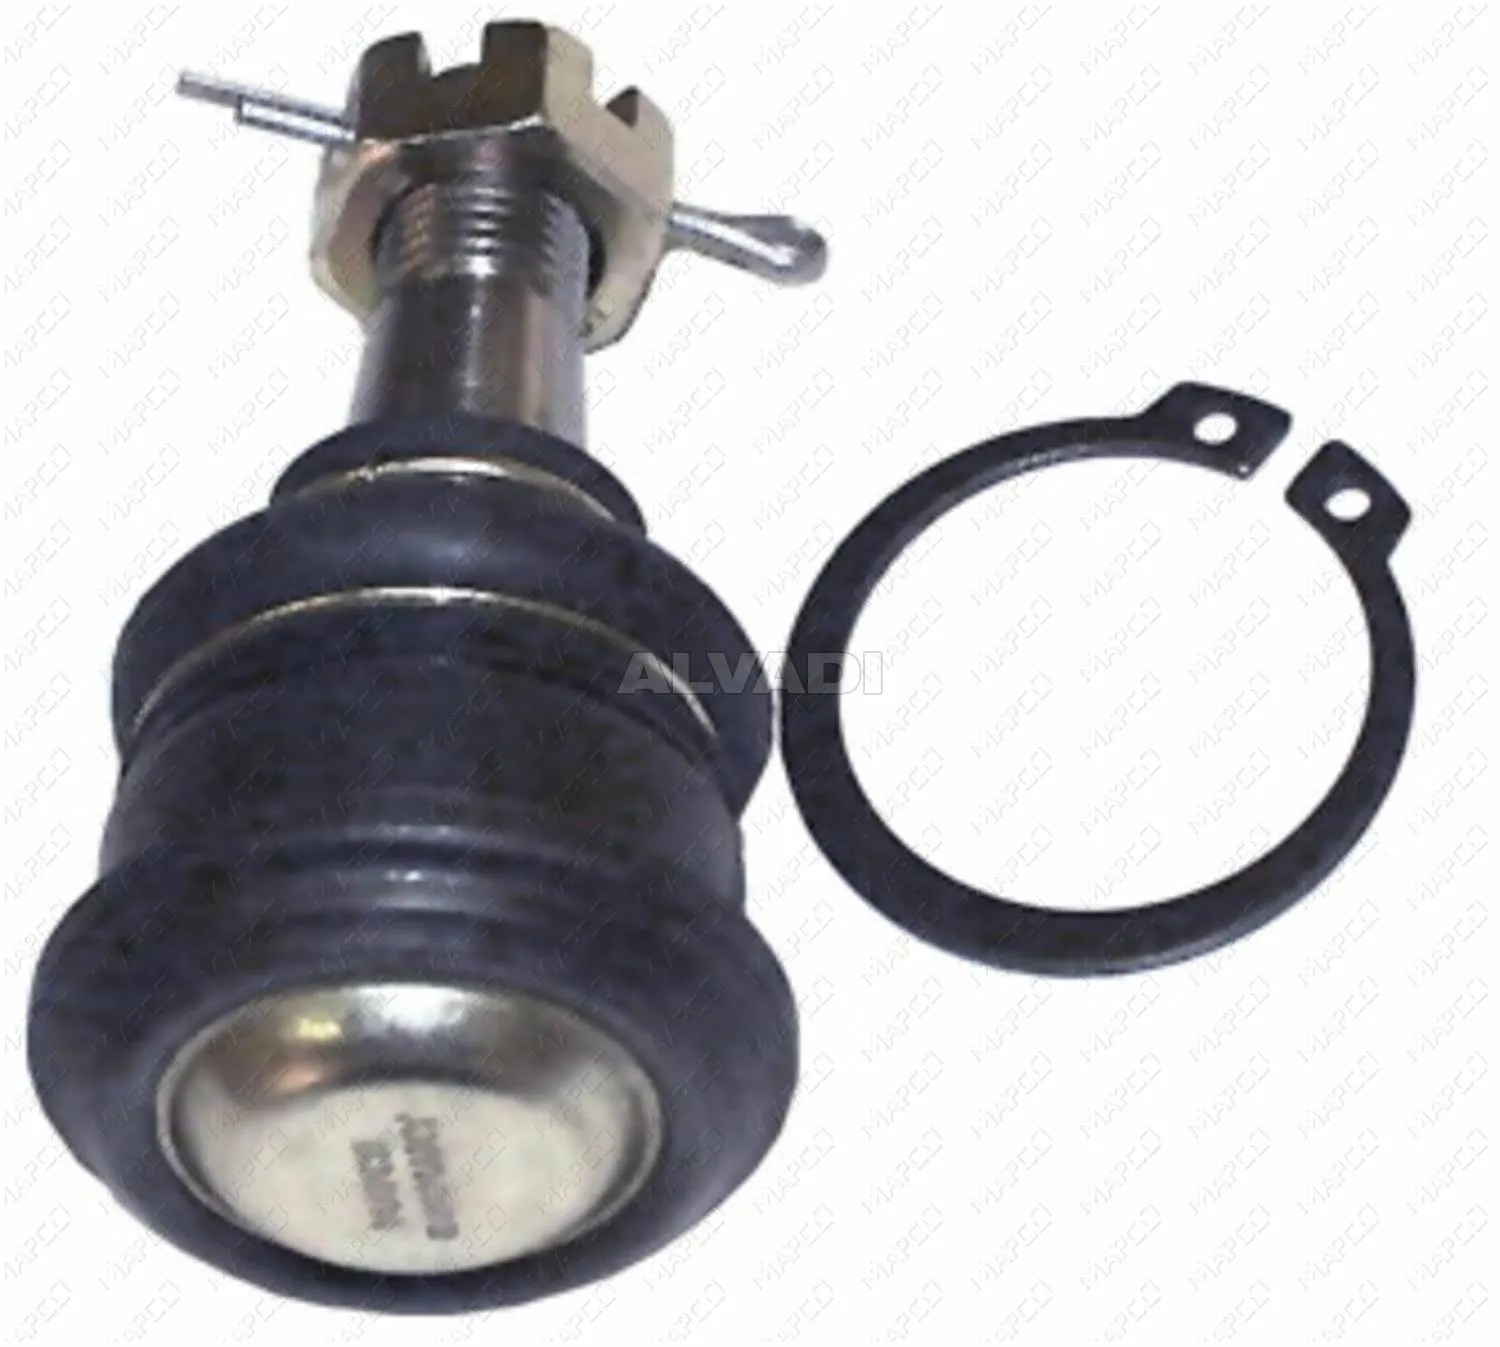 hight resolution of ball joint mapco 59522